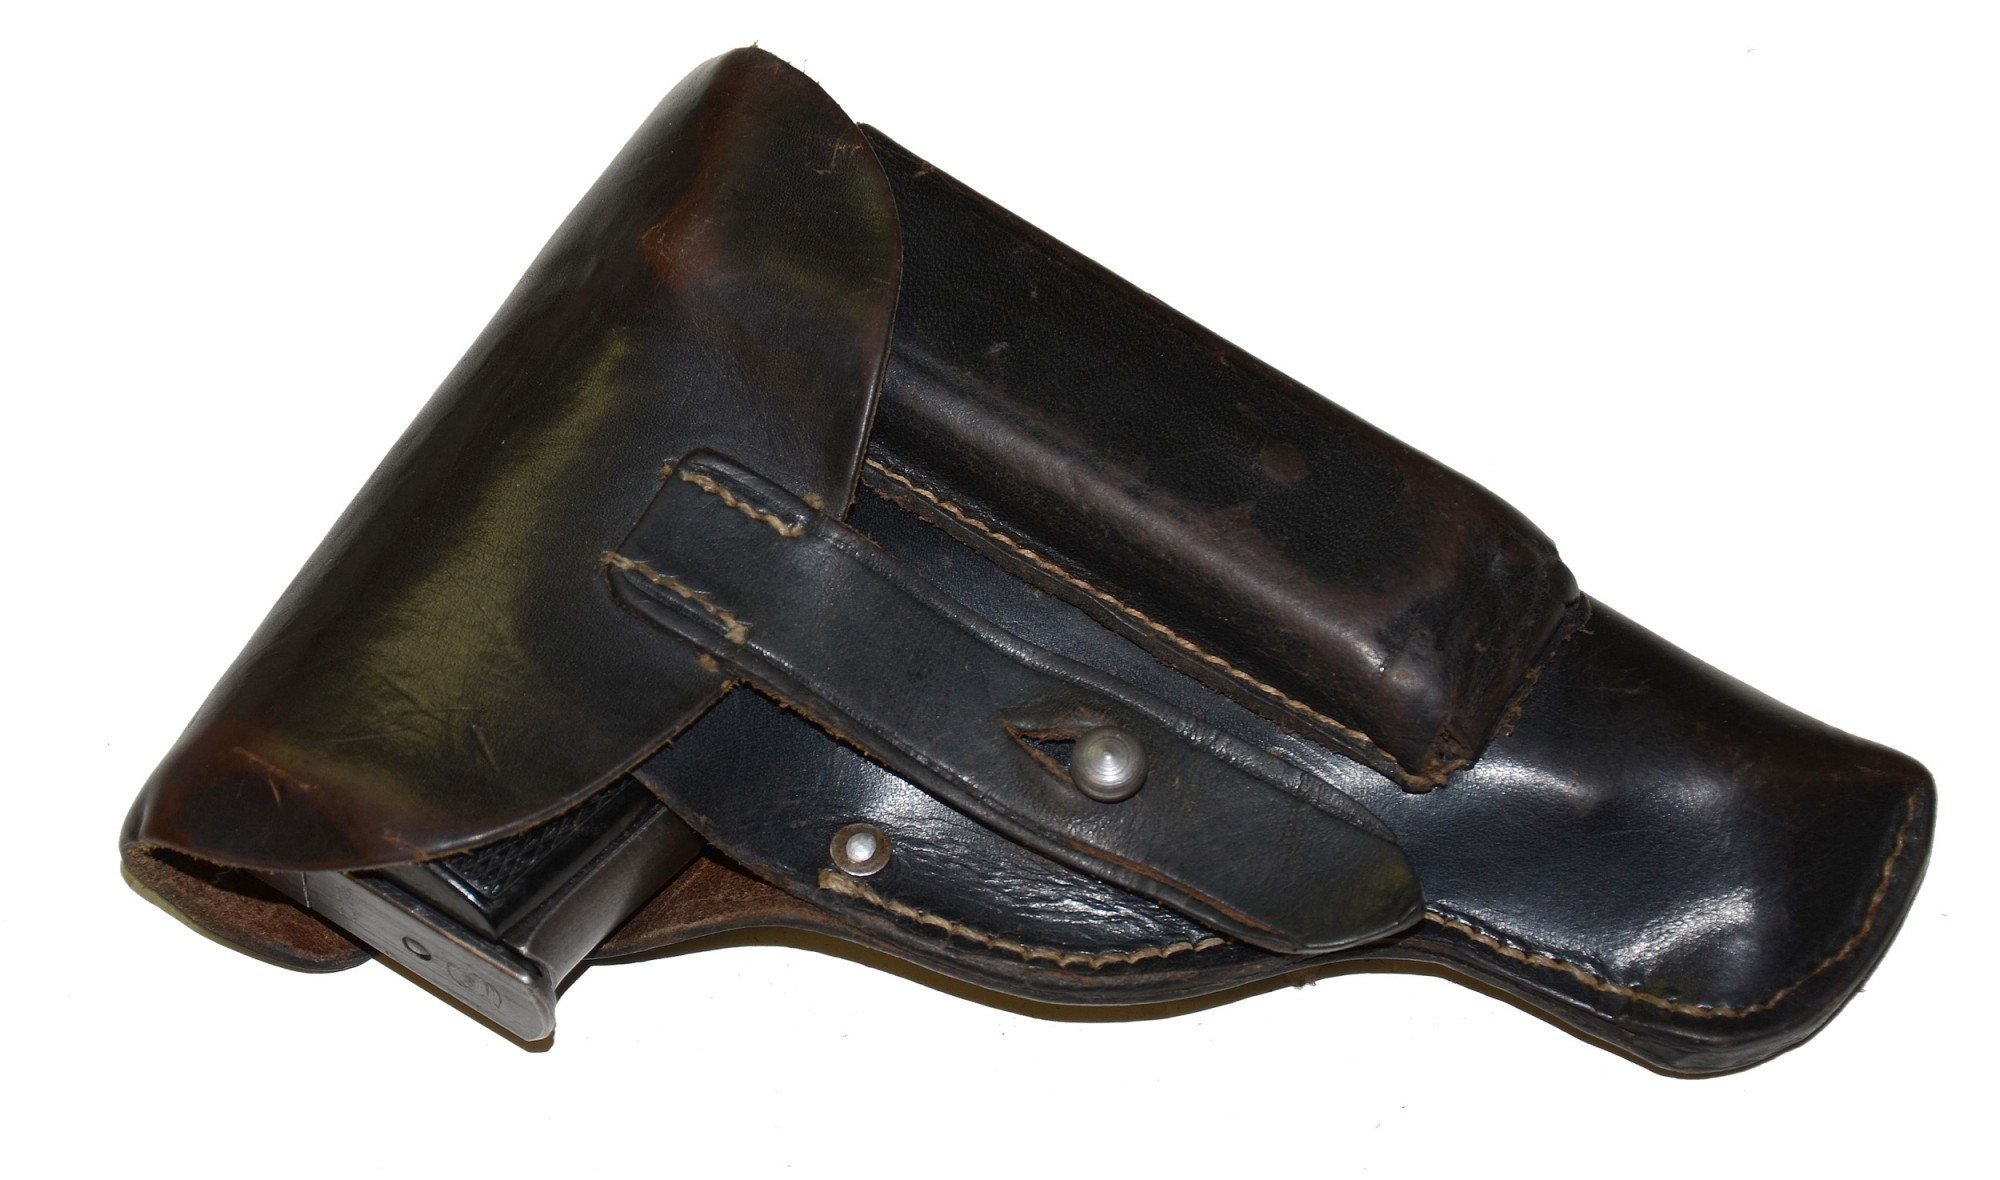 SAUER TYPE THREE 38-H MODEL POLICE PISTOL AND HOLSTER